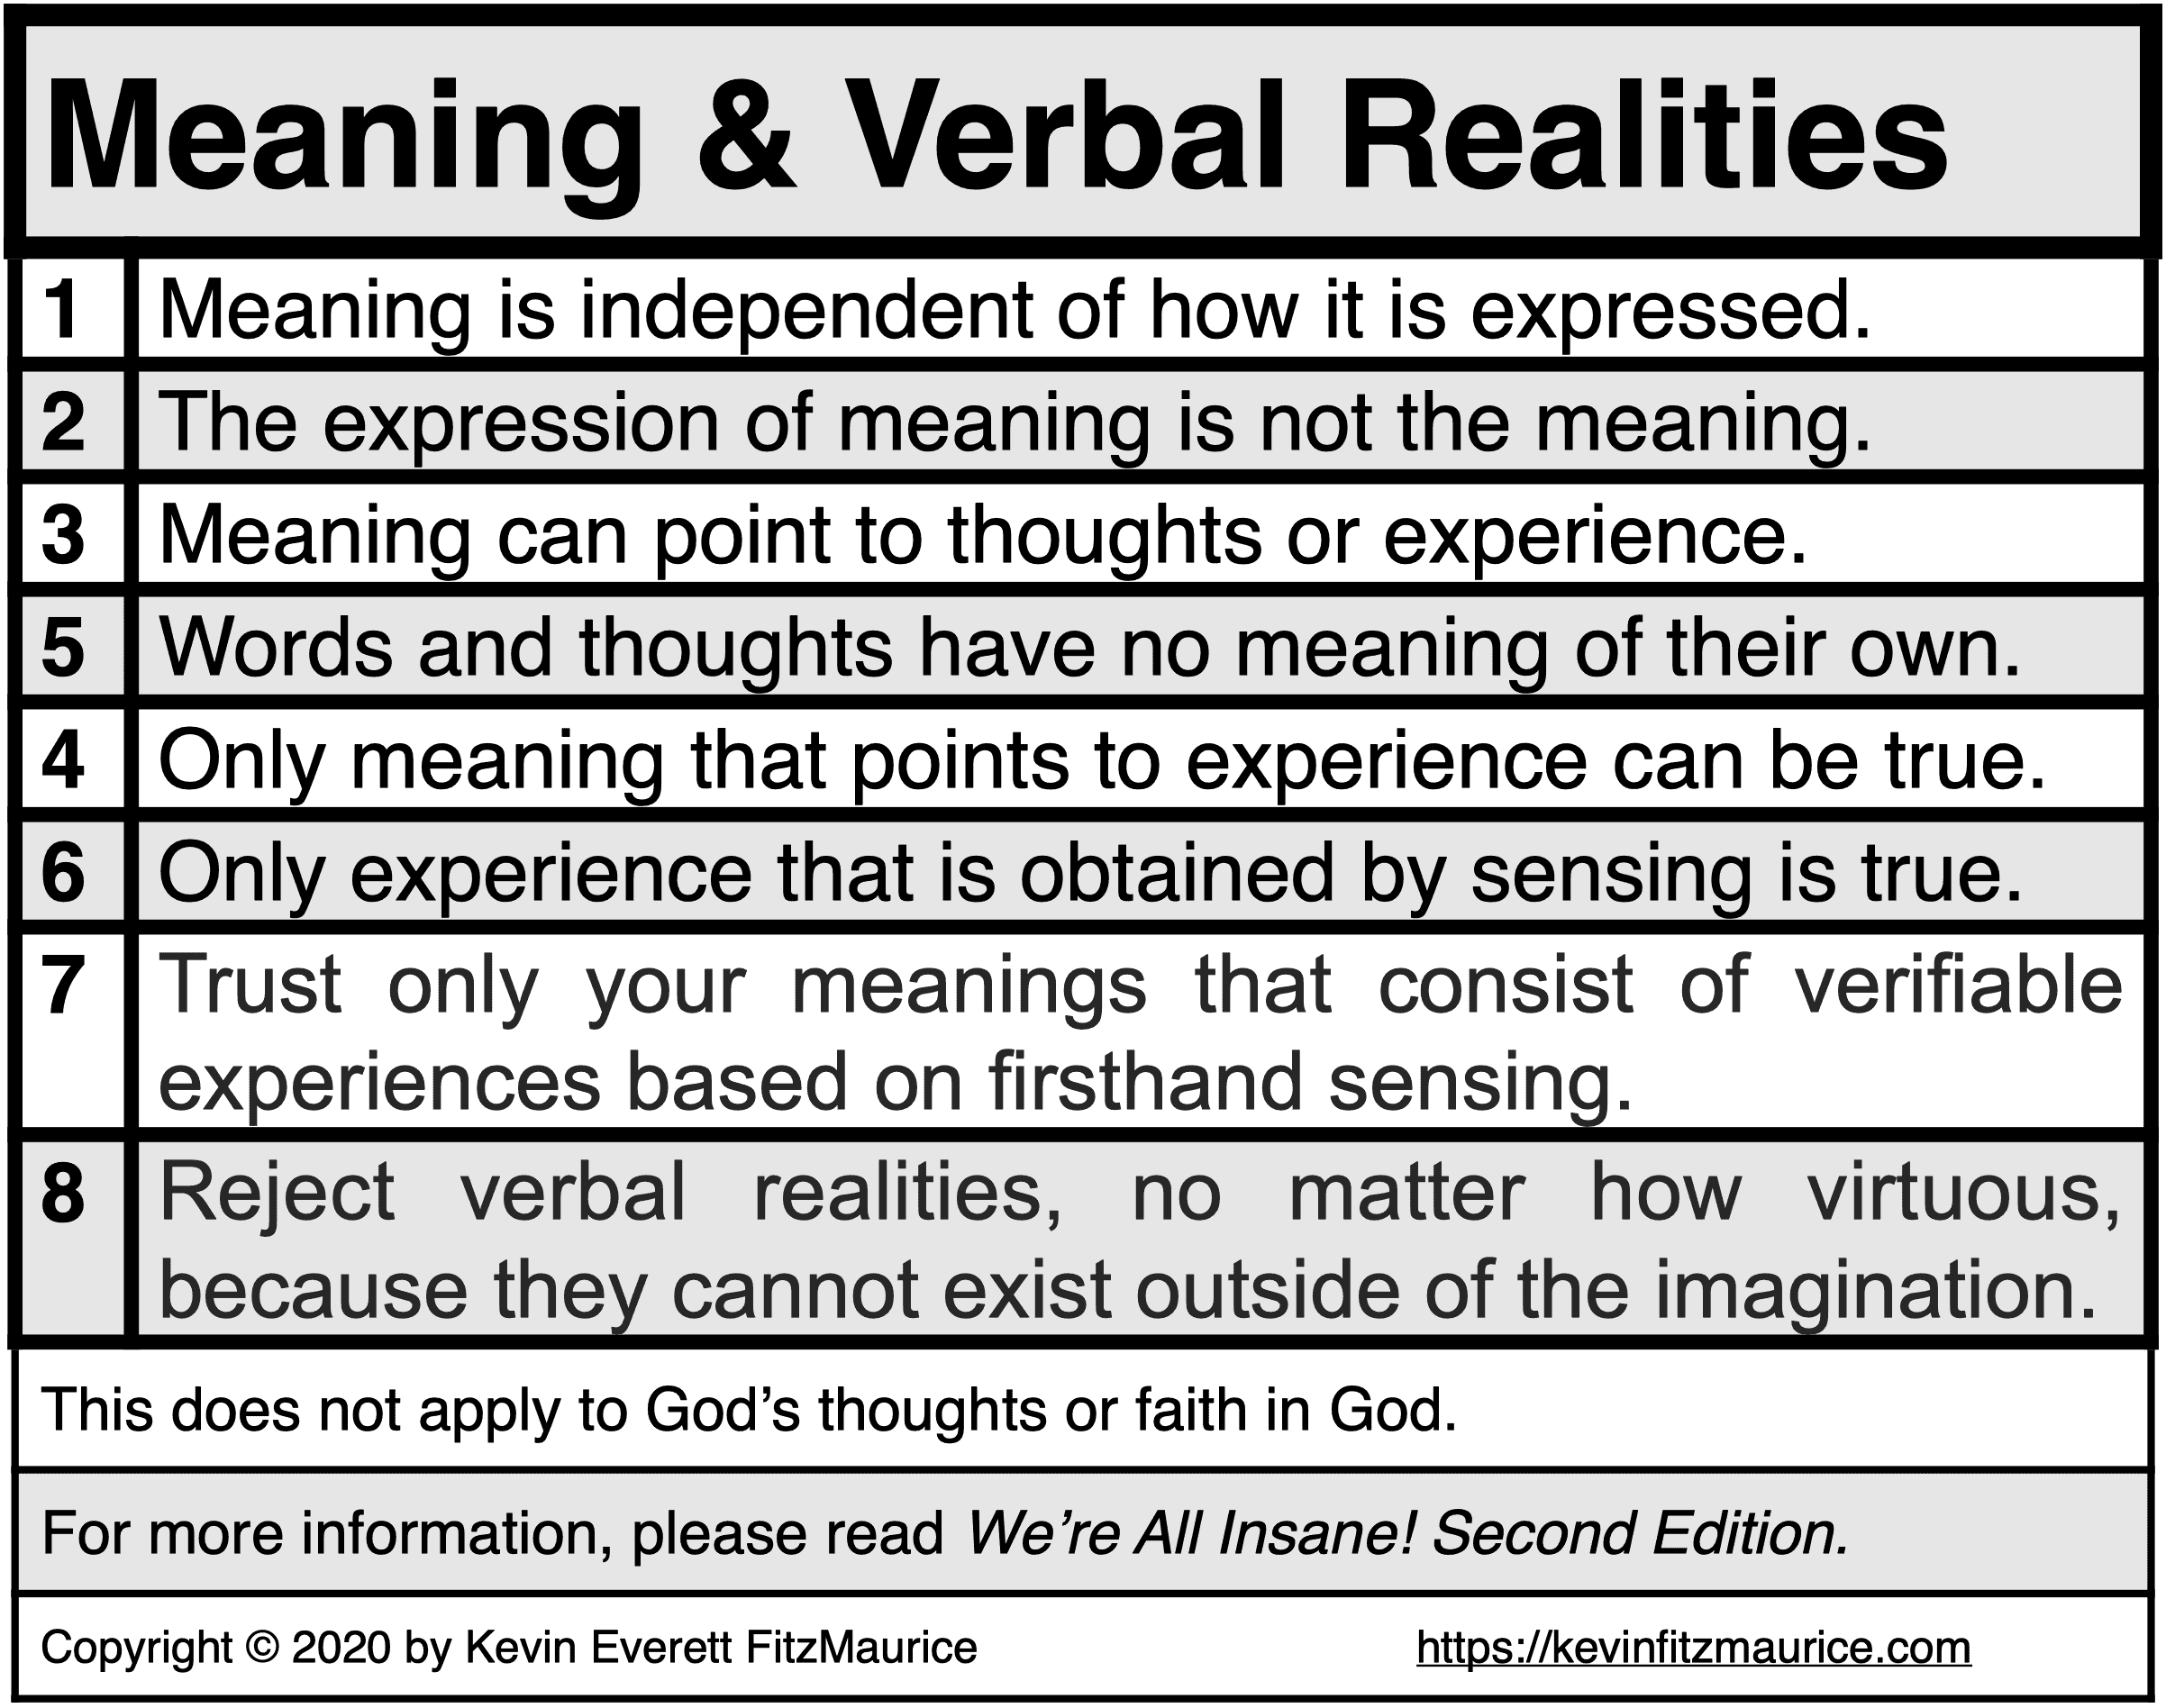 Meaning, words, and verbal realities.